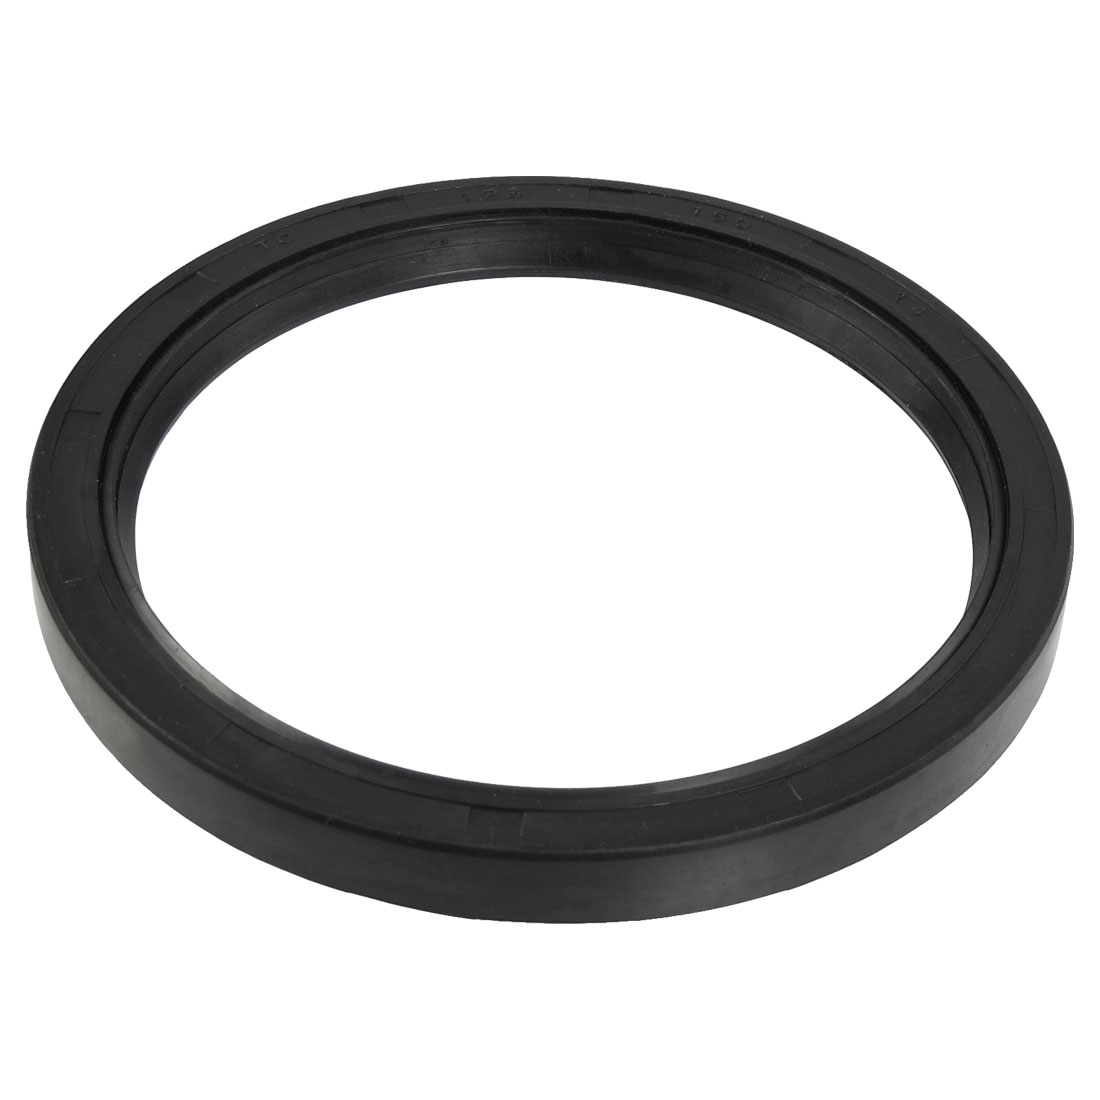 Steel Spring NBR Double Lip TC Oil Seal Black 125mm x 150mm x 14mm